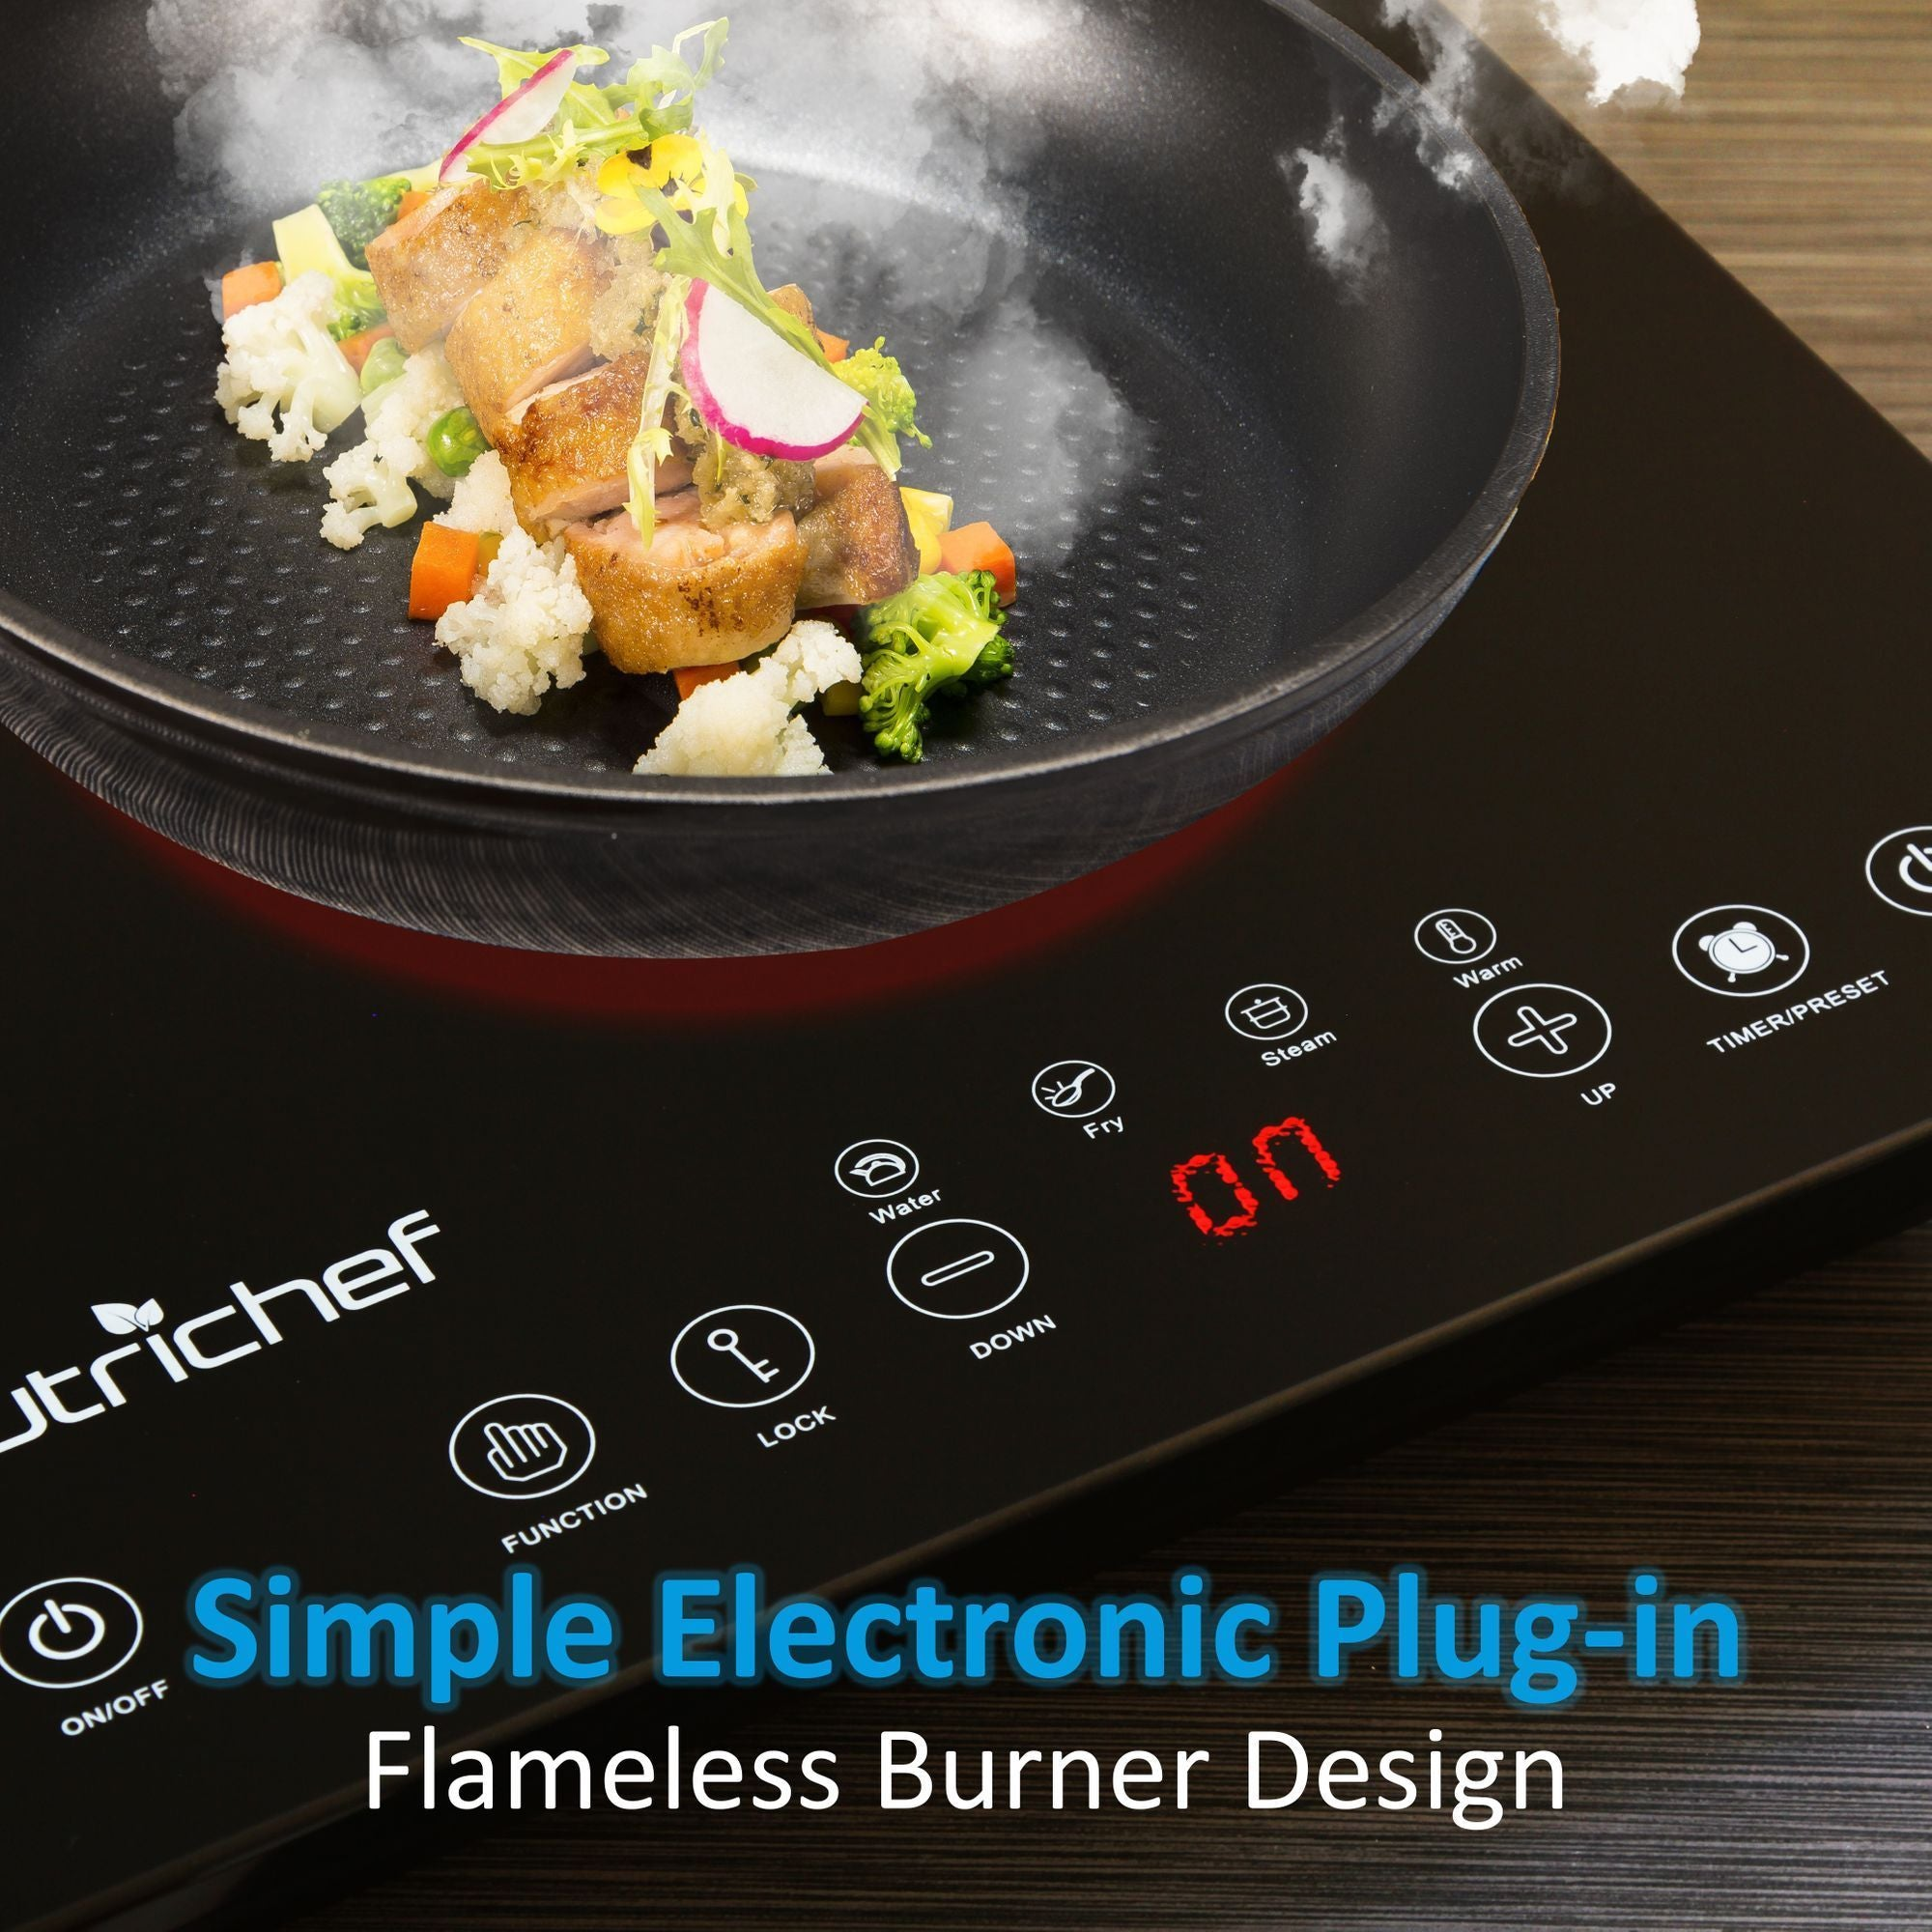 NutriChef Dual Induction Cooktop - Double Countertop Burner with Digital Display (PKSTIND48)